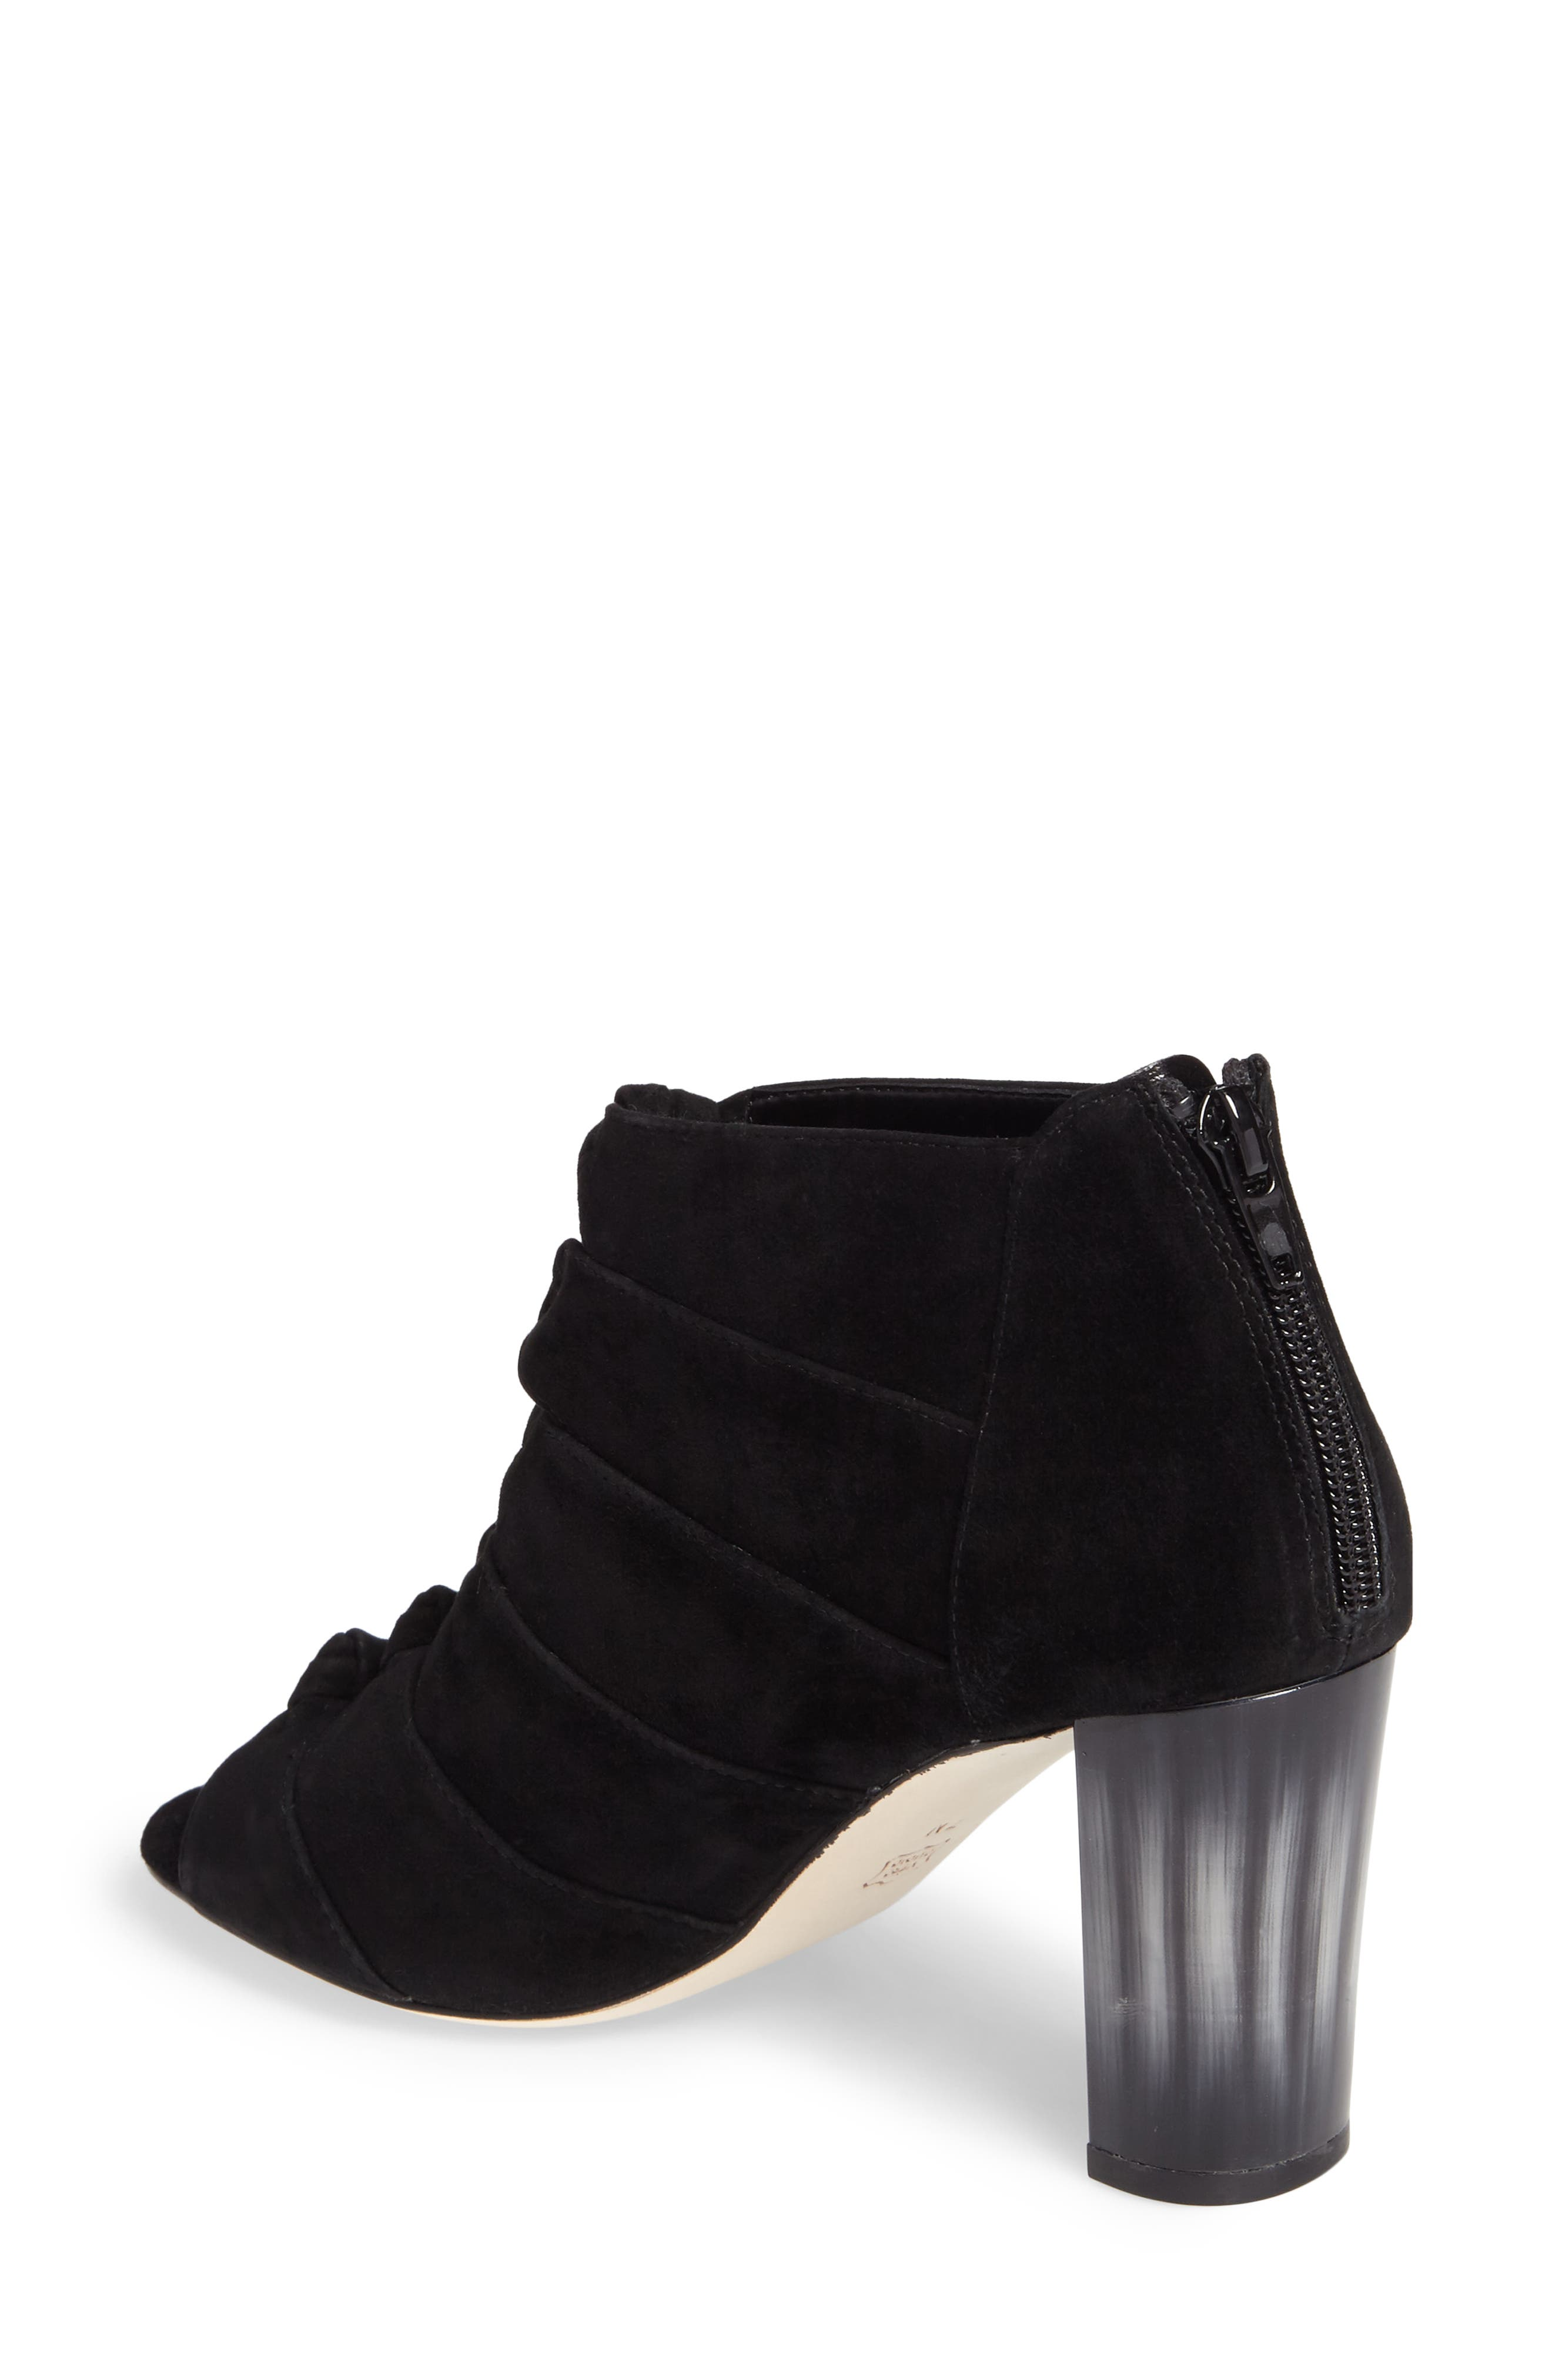 Betsy Open Toe Bootie,                             Alternate thumbnail 2, color,                             Black Suede